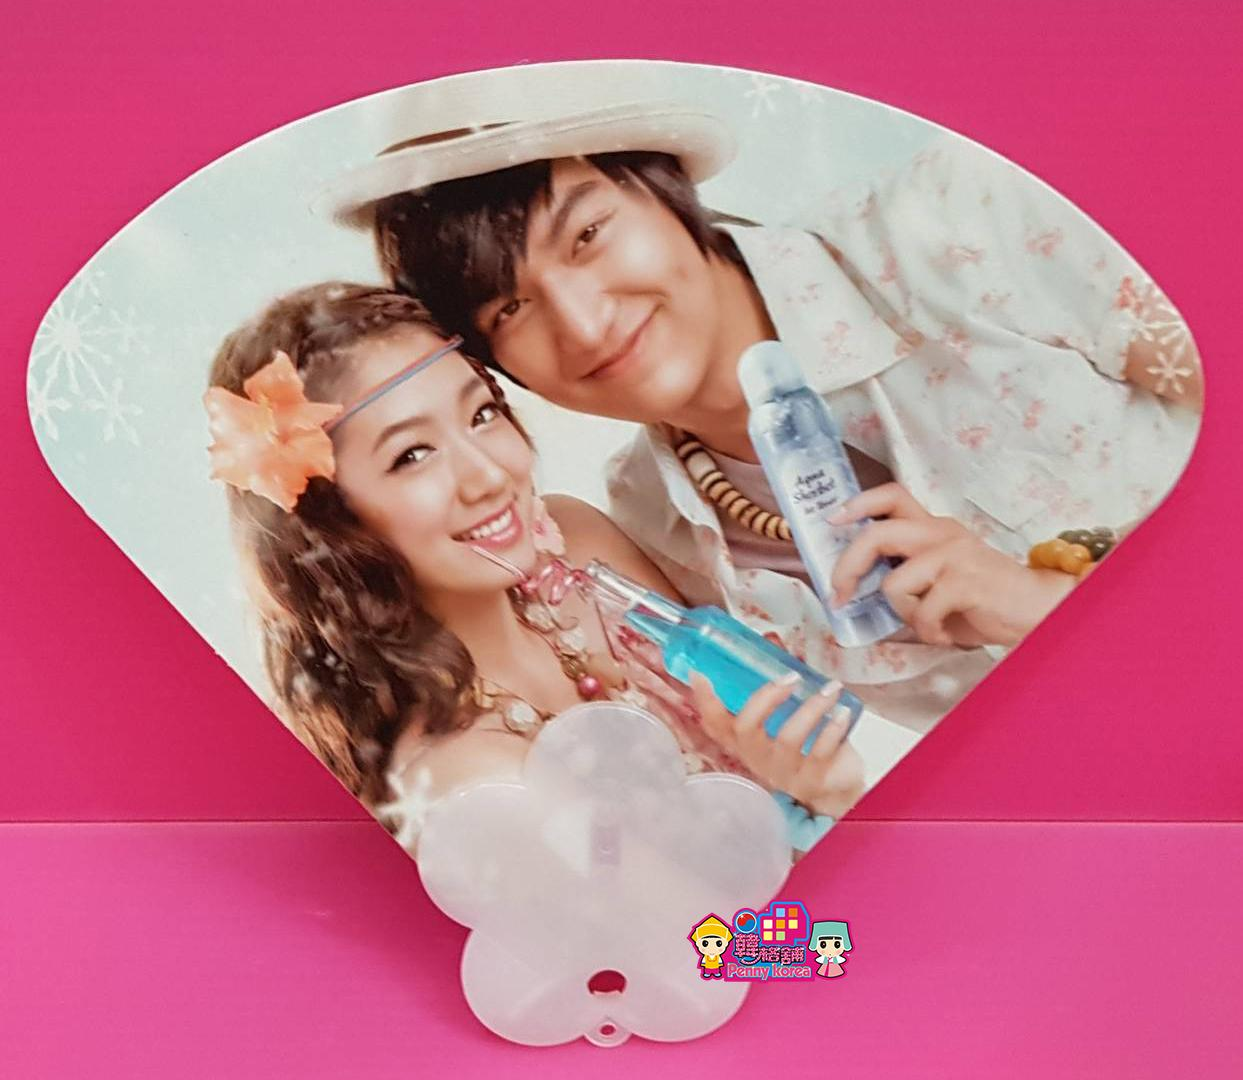 李敏镐 LeeMinHo [ Official Double sided fan ] K-pop <PennyKorea>Etude House Minoz Korean drama The King:永远的君主 [ 官方双面扇子 ]